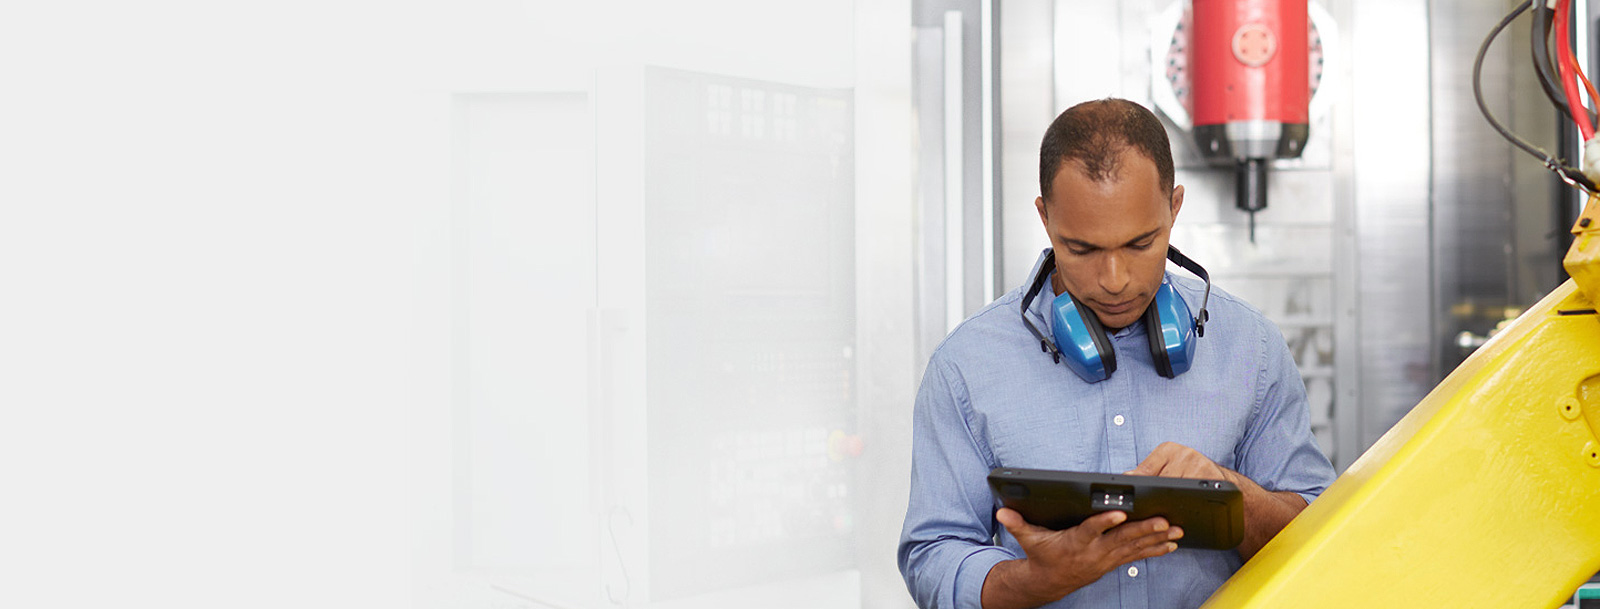 Man with protective headphones working on a tablet